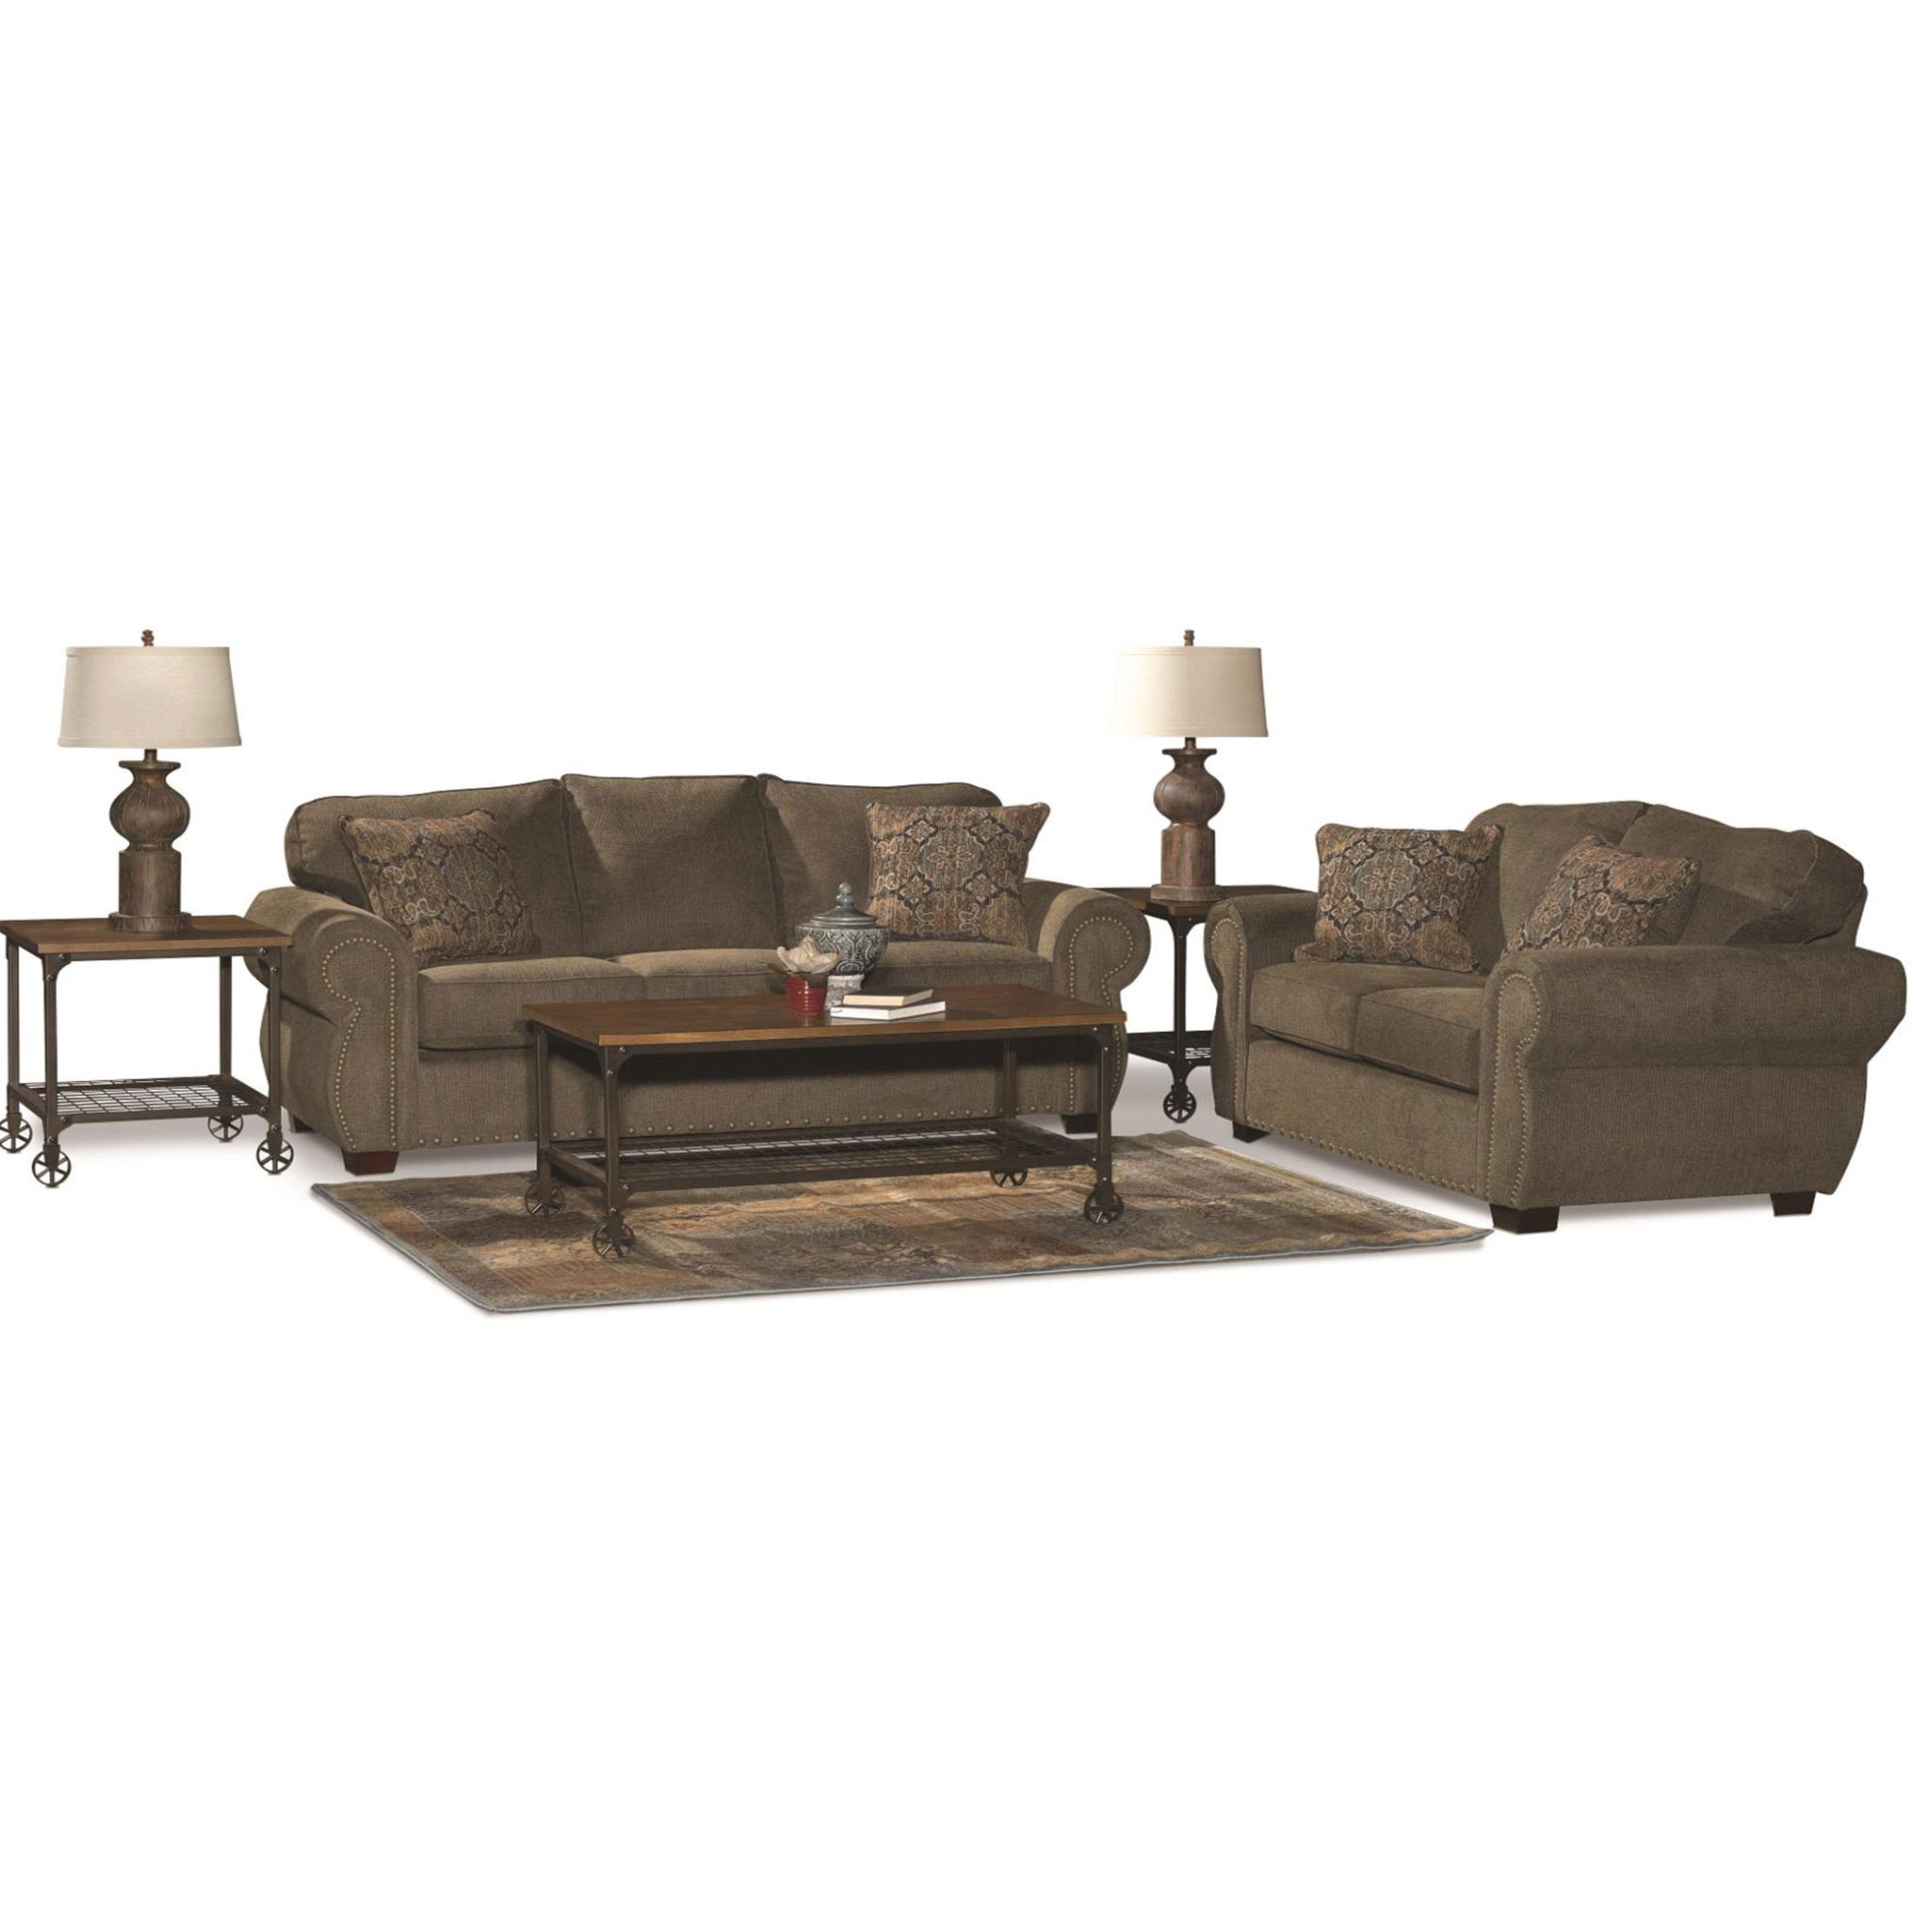 Room Couches Home And Interior Design